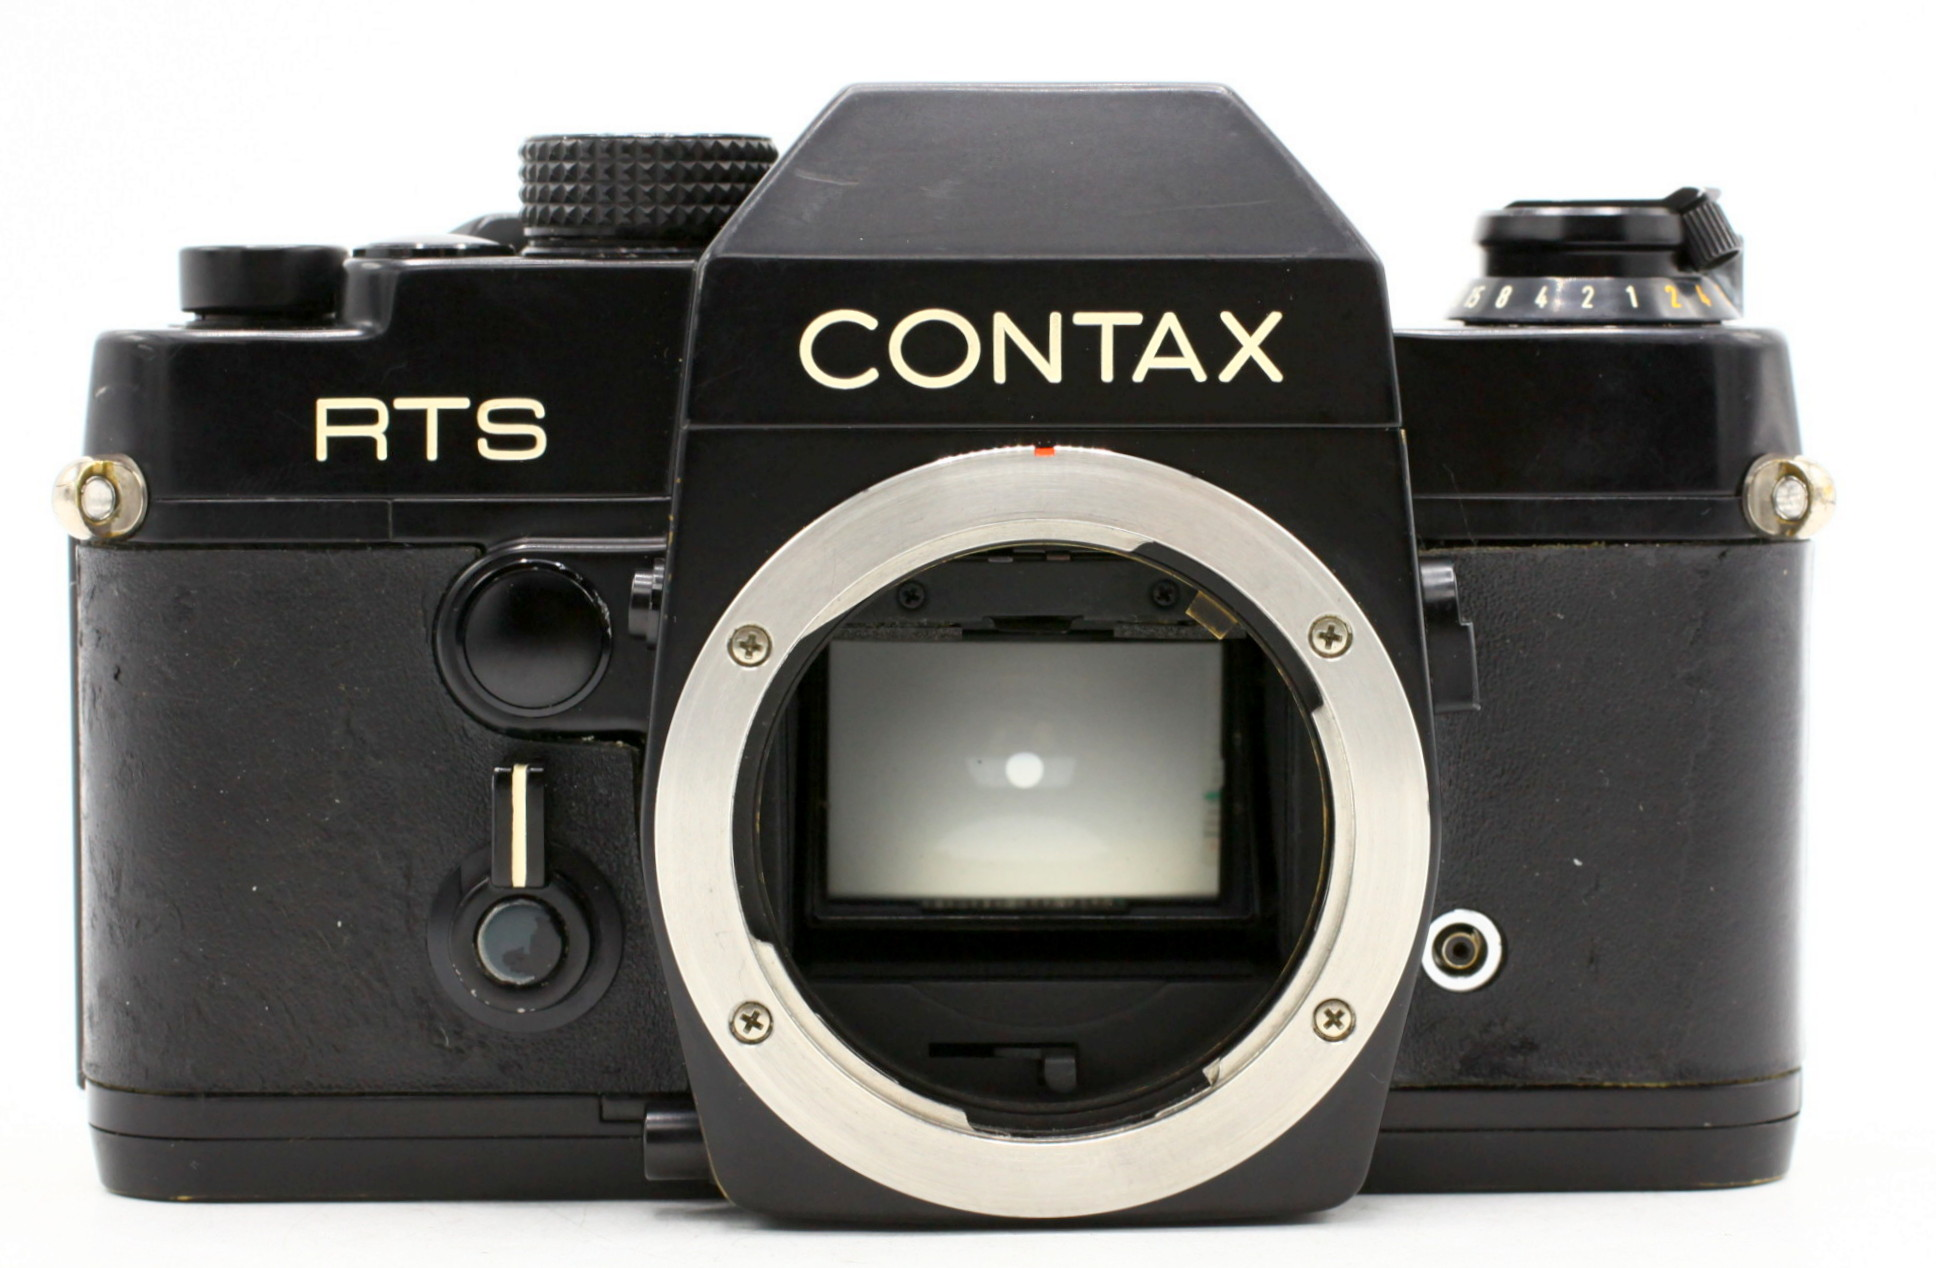 Contax RTS occasion